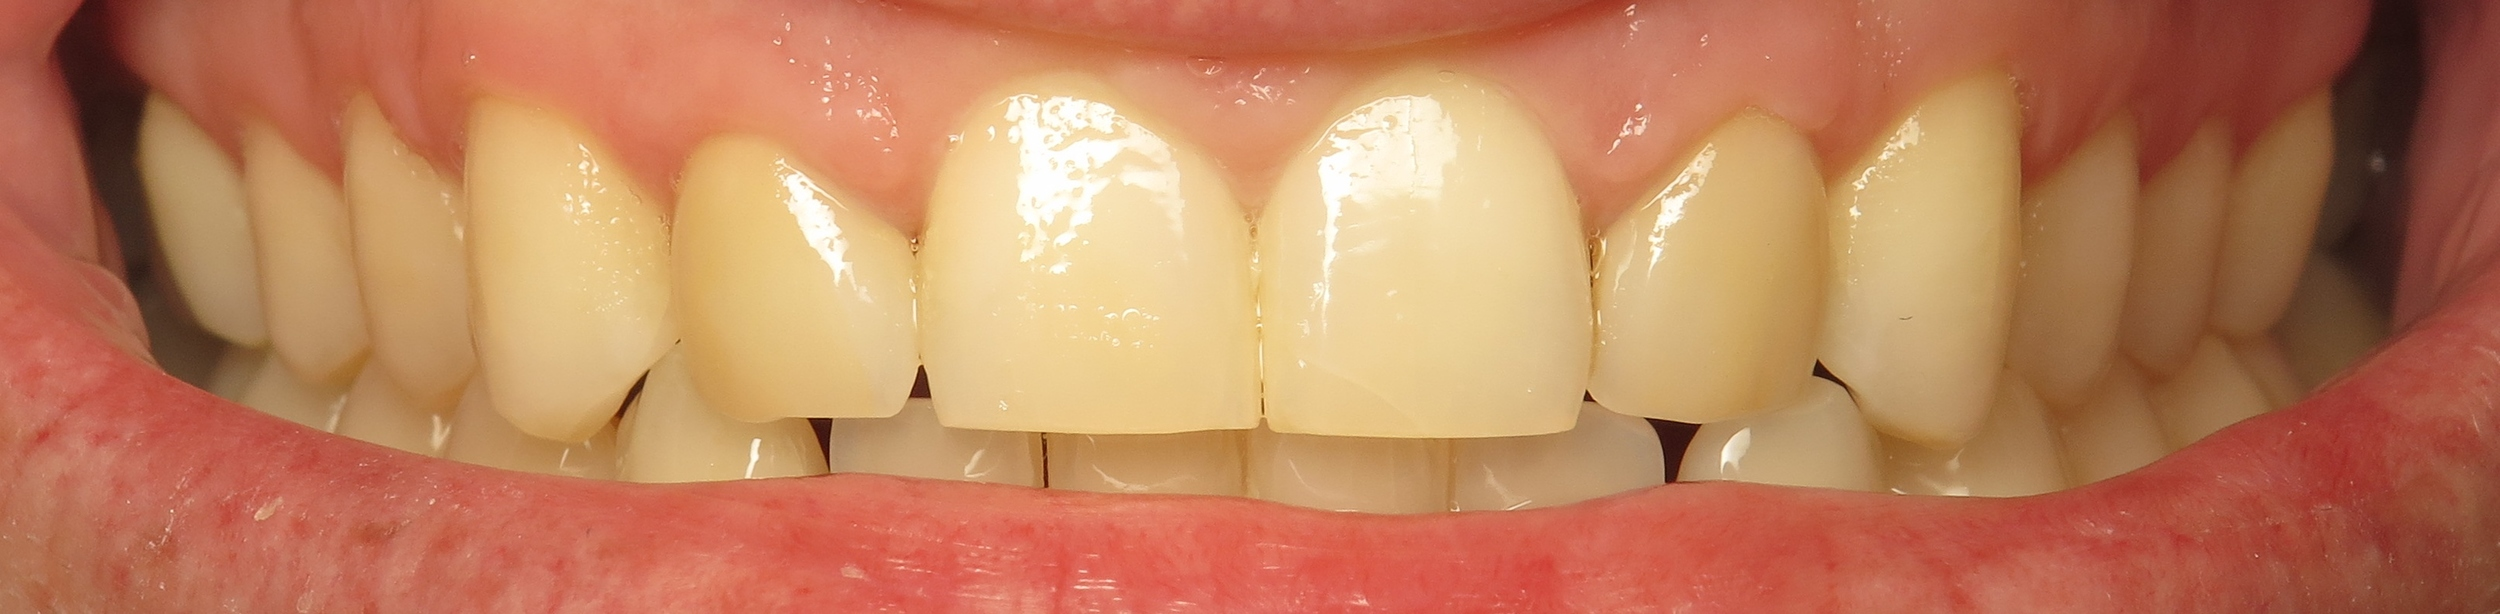 Thousand Oaks Family Dentistry - Golden Proportion Case 2 retracted smile.JPG